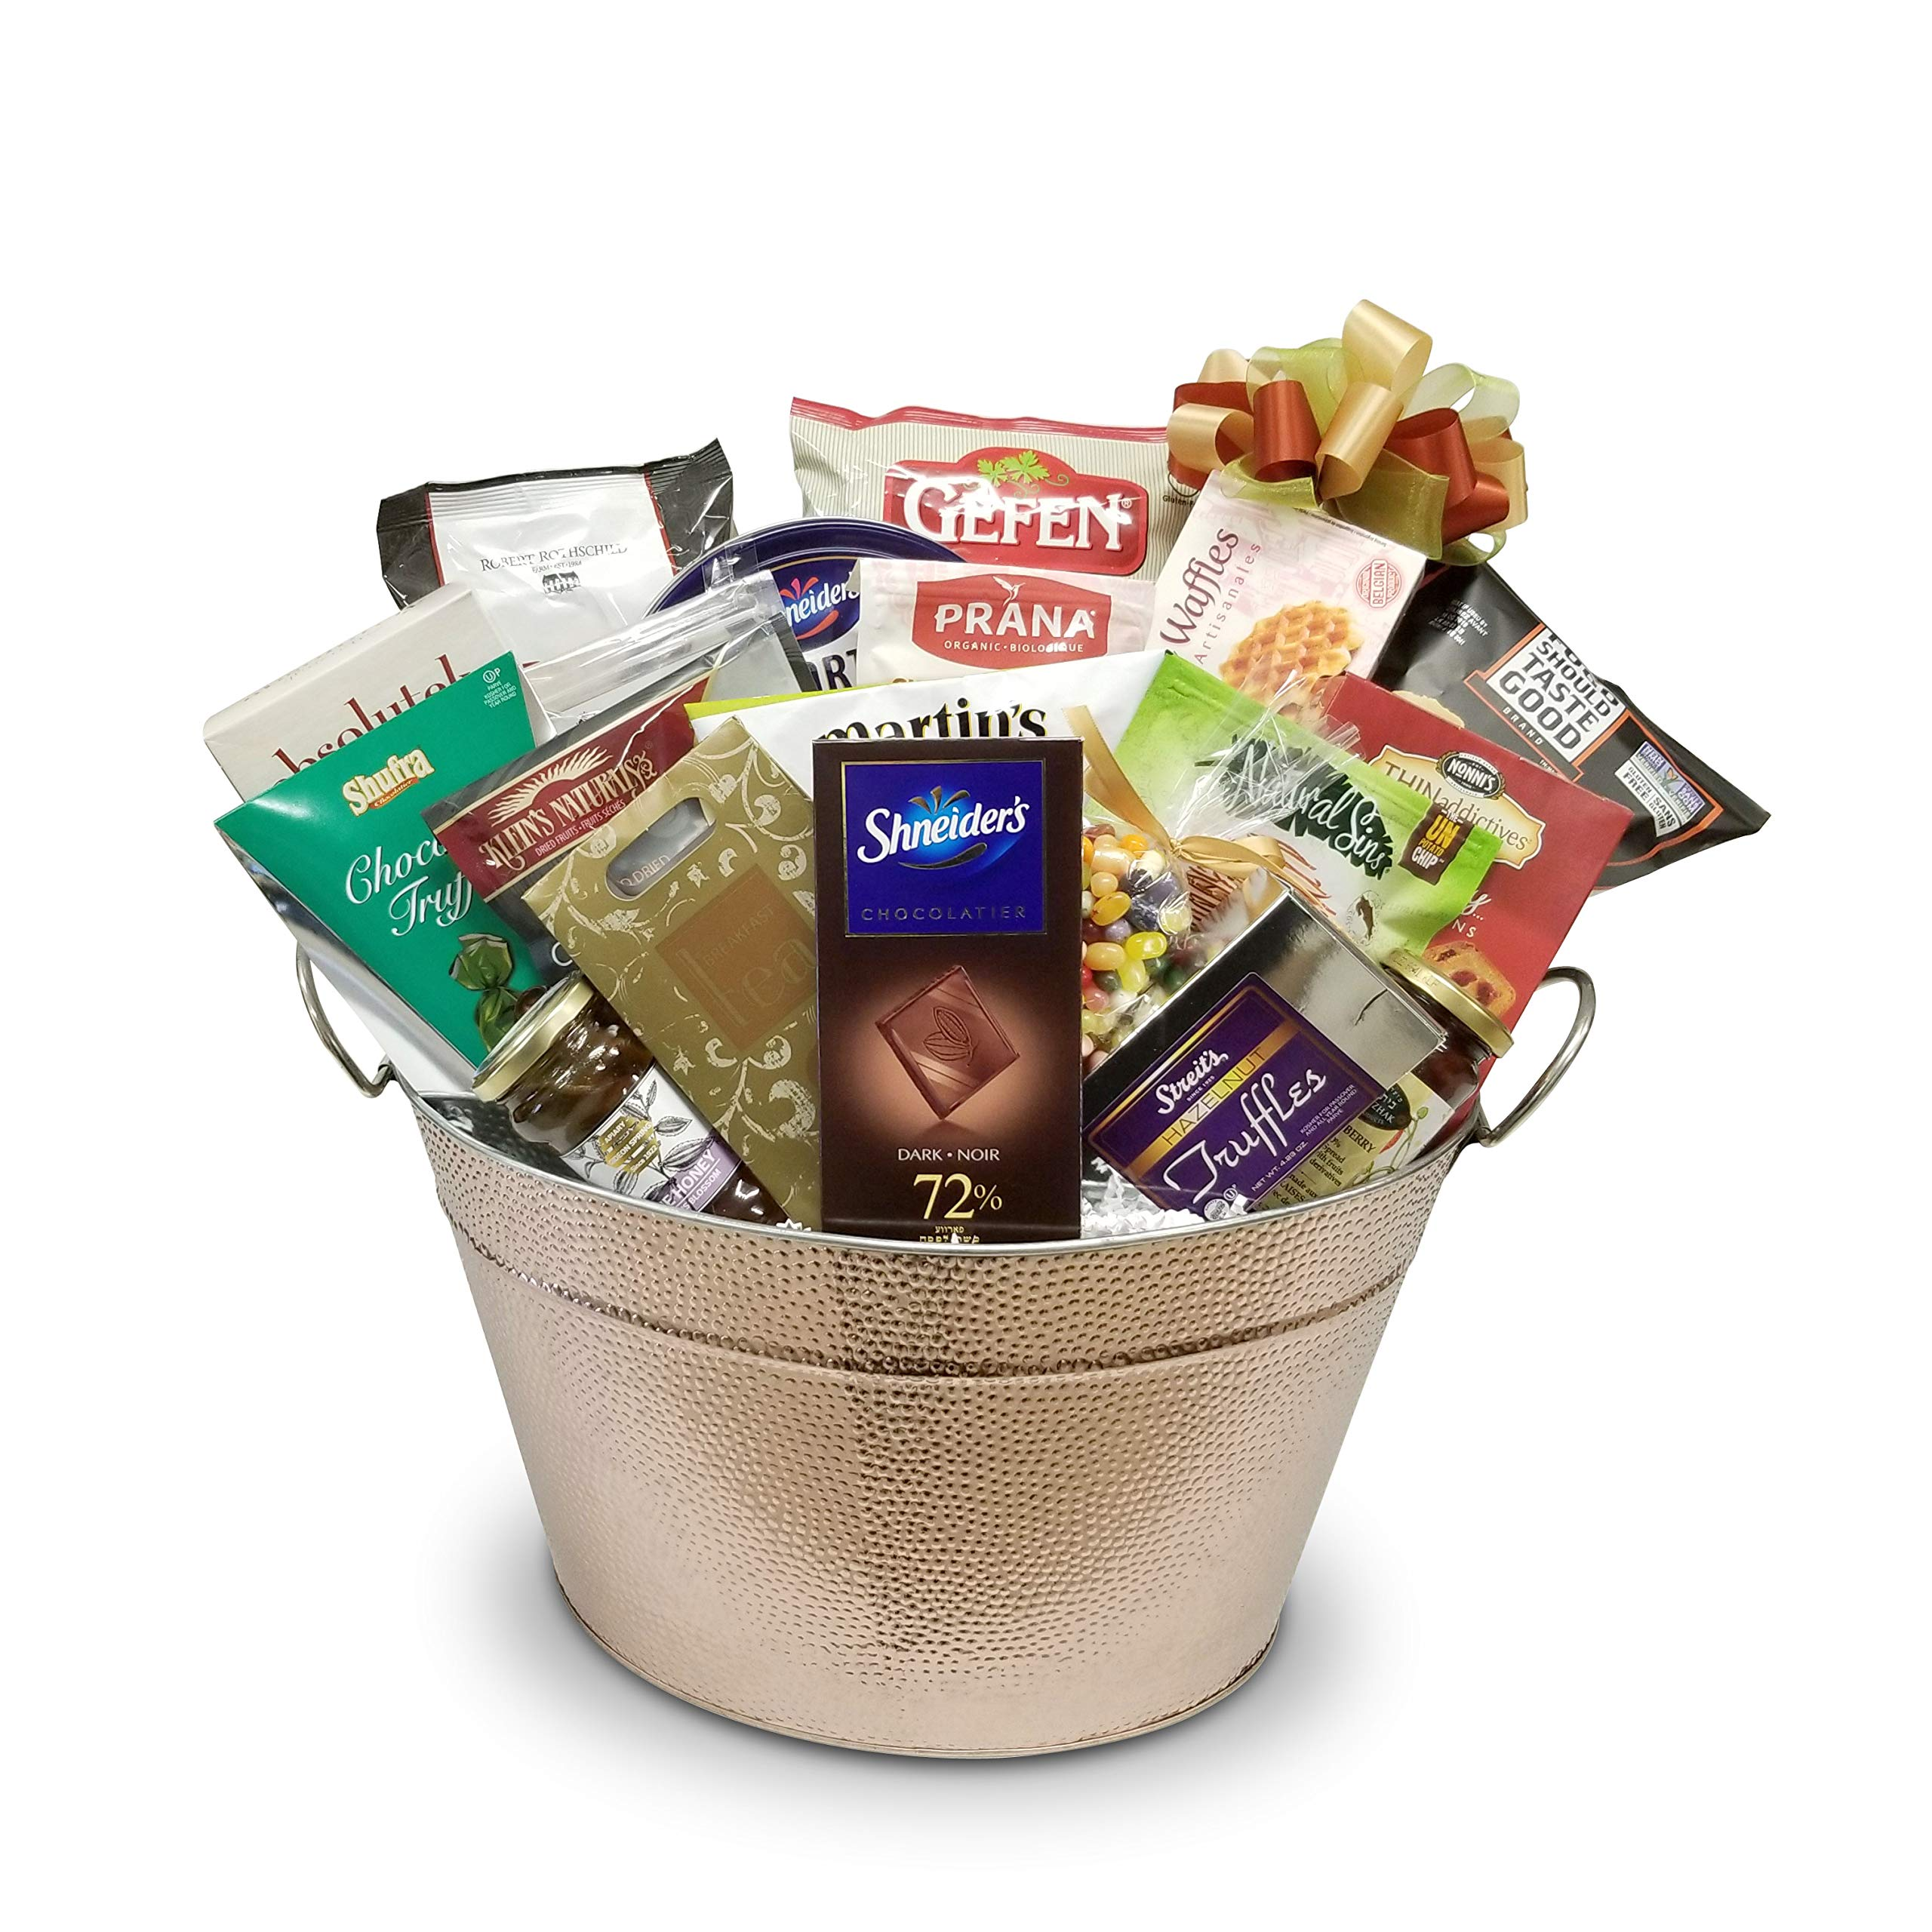 CDM product Rosh Hashana-Jewish New Year Kosher Gift Basket with Sweets, Apple Chips, Nuts, Honey Cookies, Chocolates and More big image